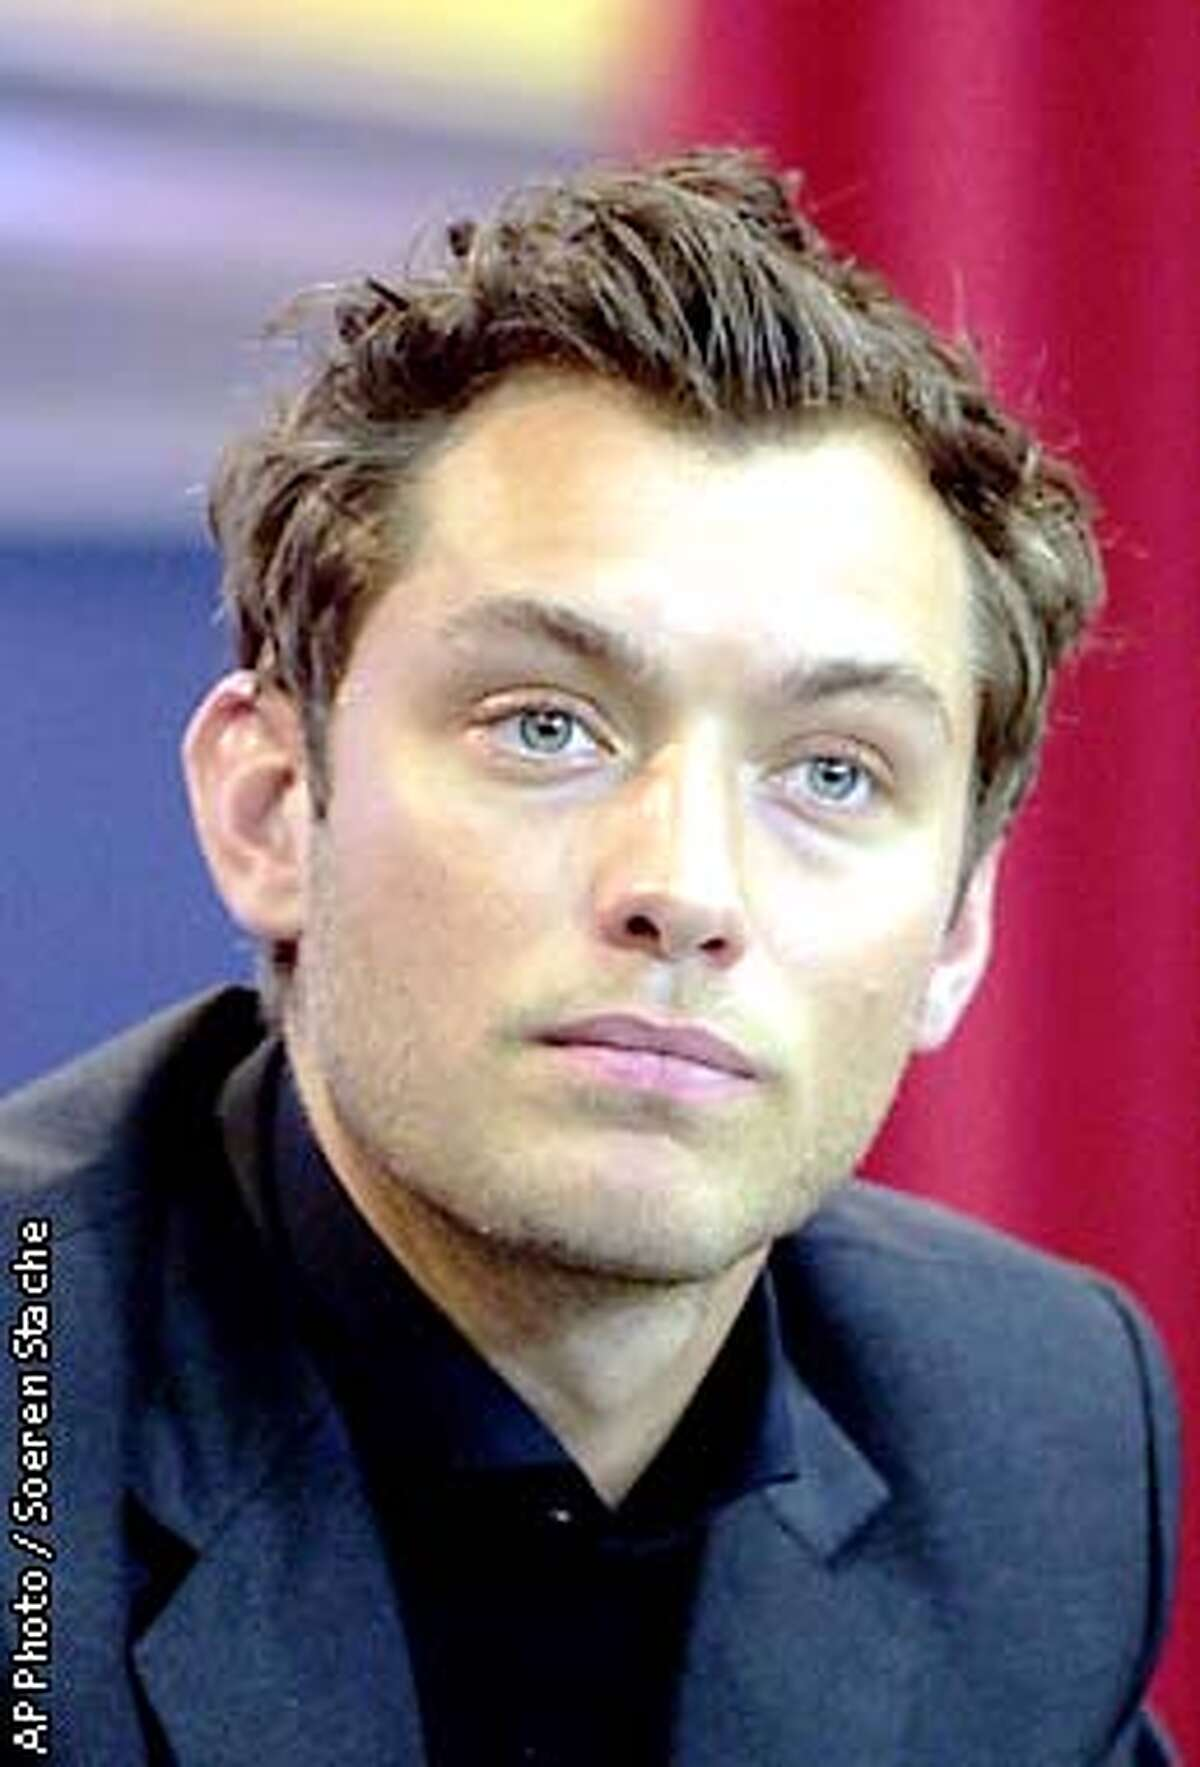 """Actor Jude Law during a press conference for the movie """"Enemy at the Gates"""" at the Berlinale Film Festival in Berlin, Germany on Feb. 7, 2001. (AP Photo/Soeren Stache)"""